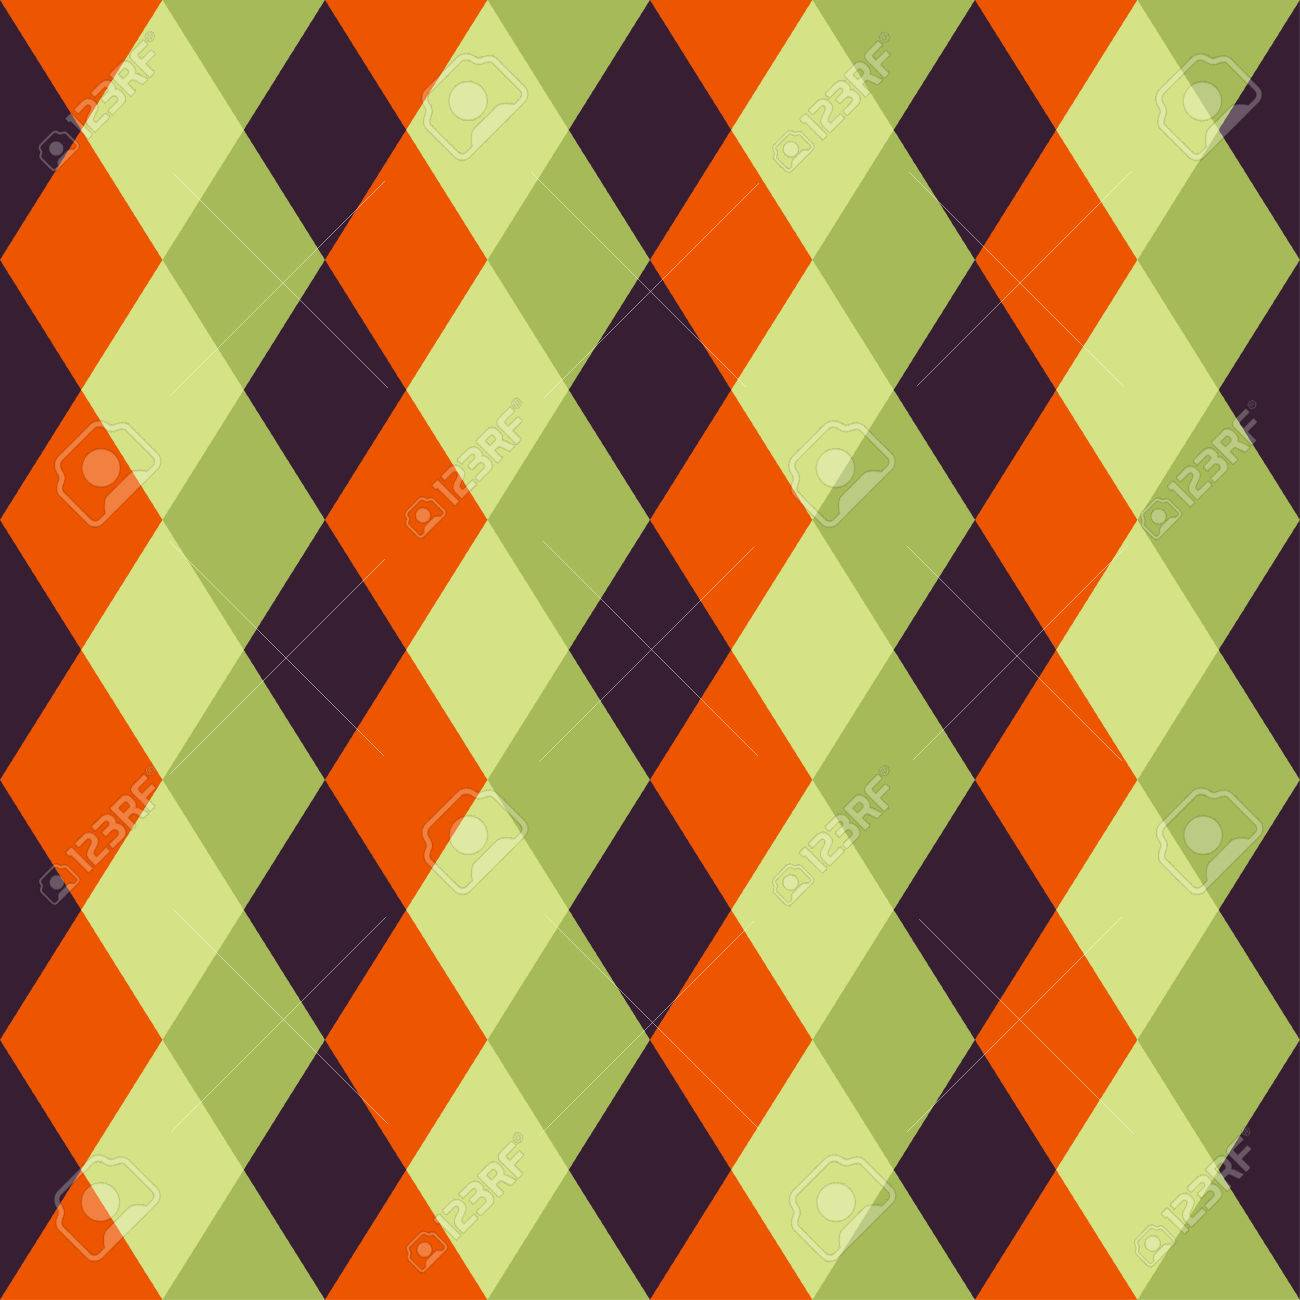 Happy Halloween Background. Seamless pattern. Collection of seamless patterns in the traditional holiday colors. - 44353673